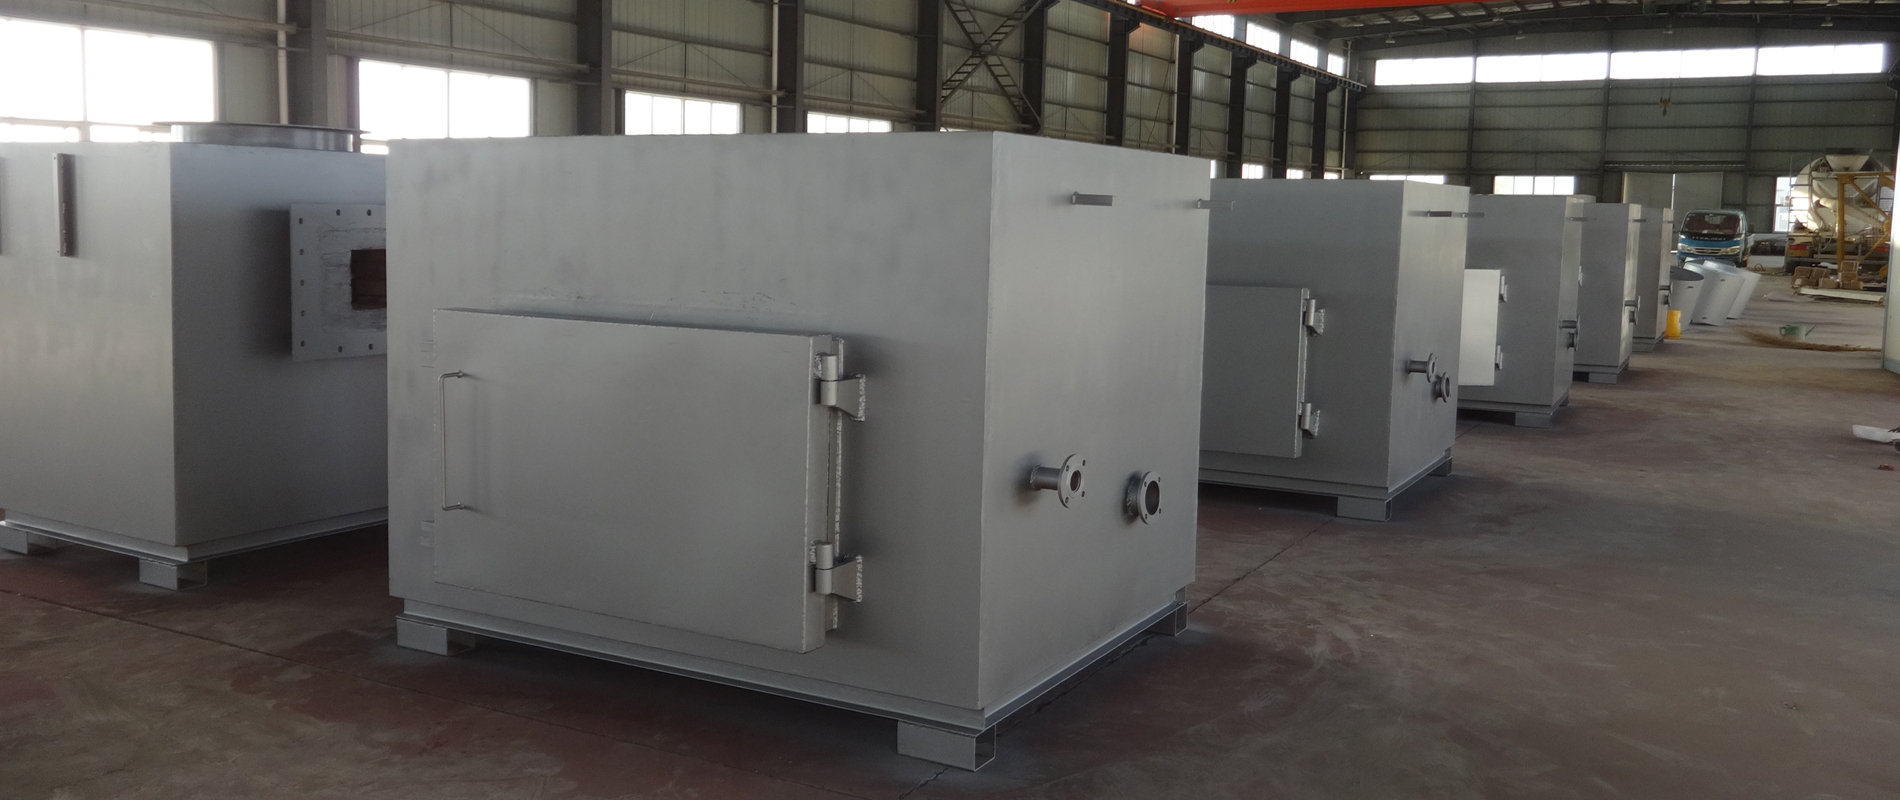 Medium/Large Scale Waste  Incinerators